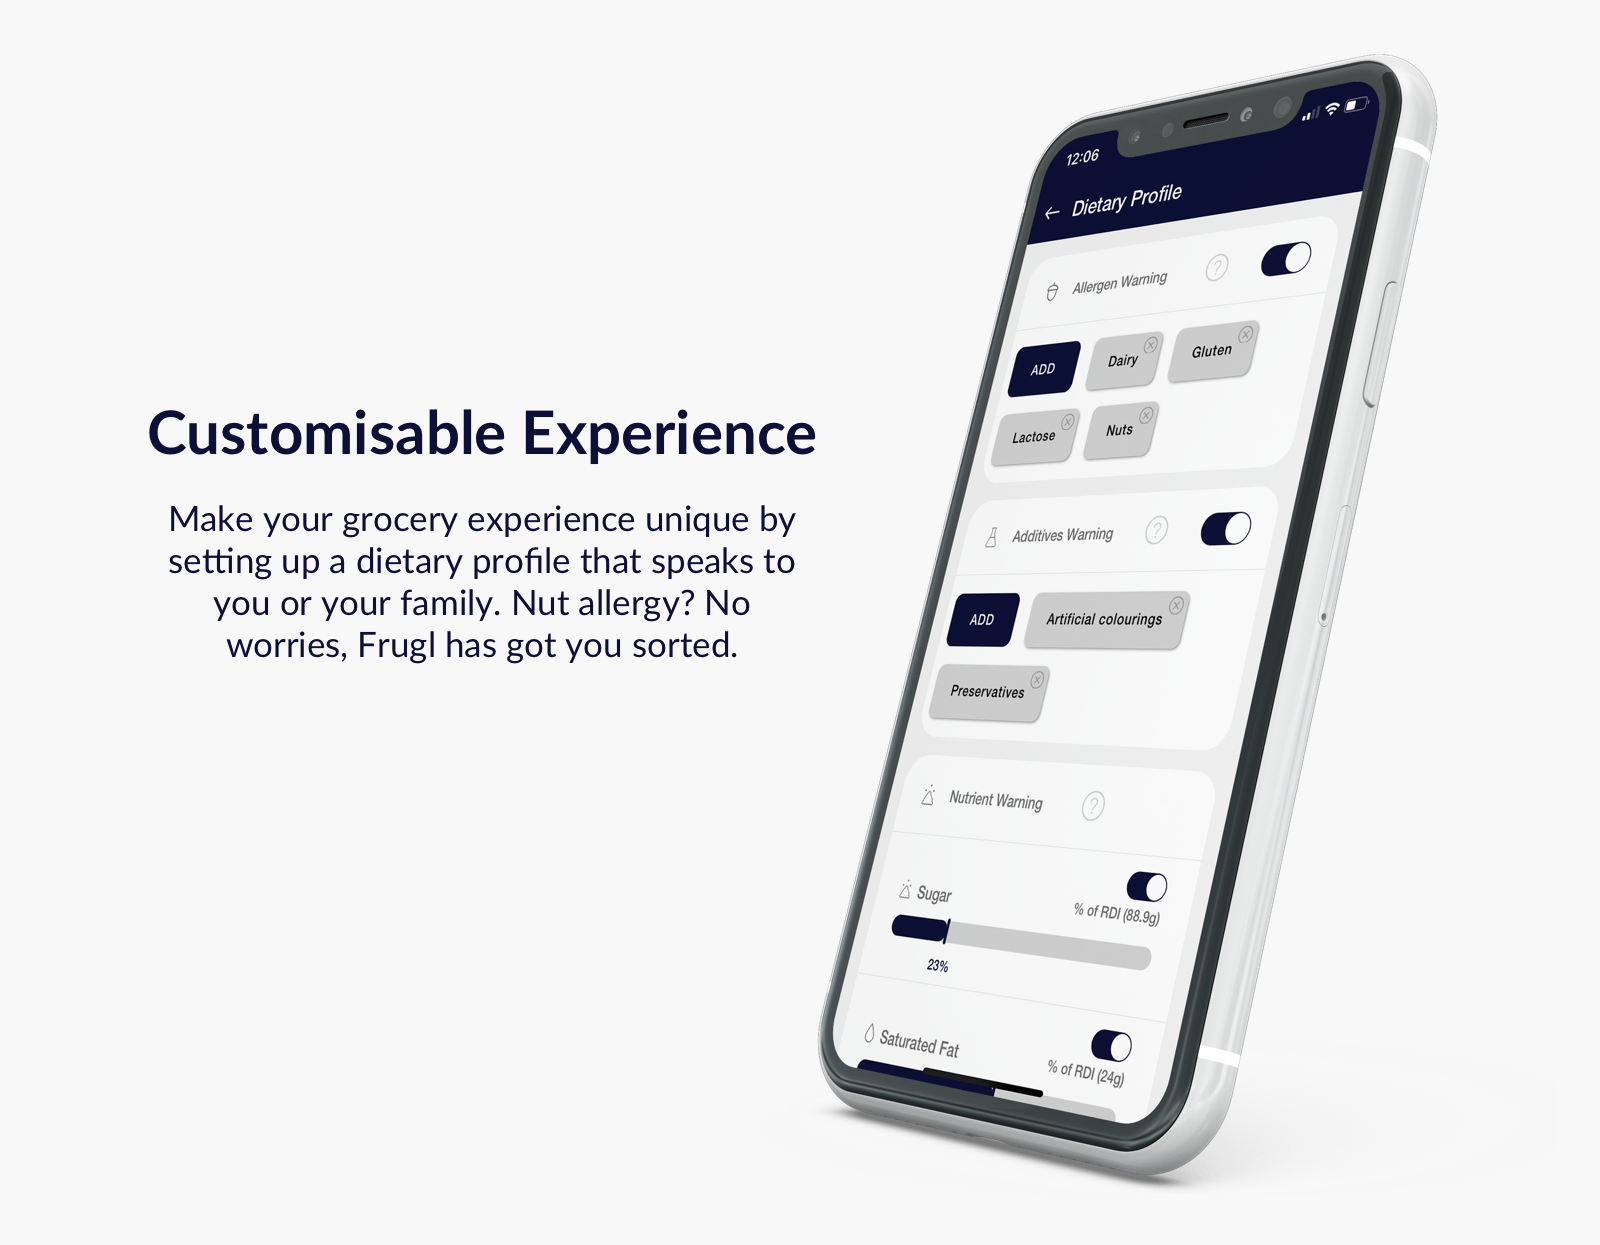 Customisable experience